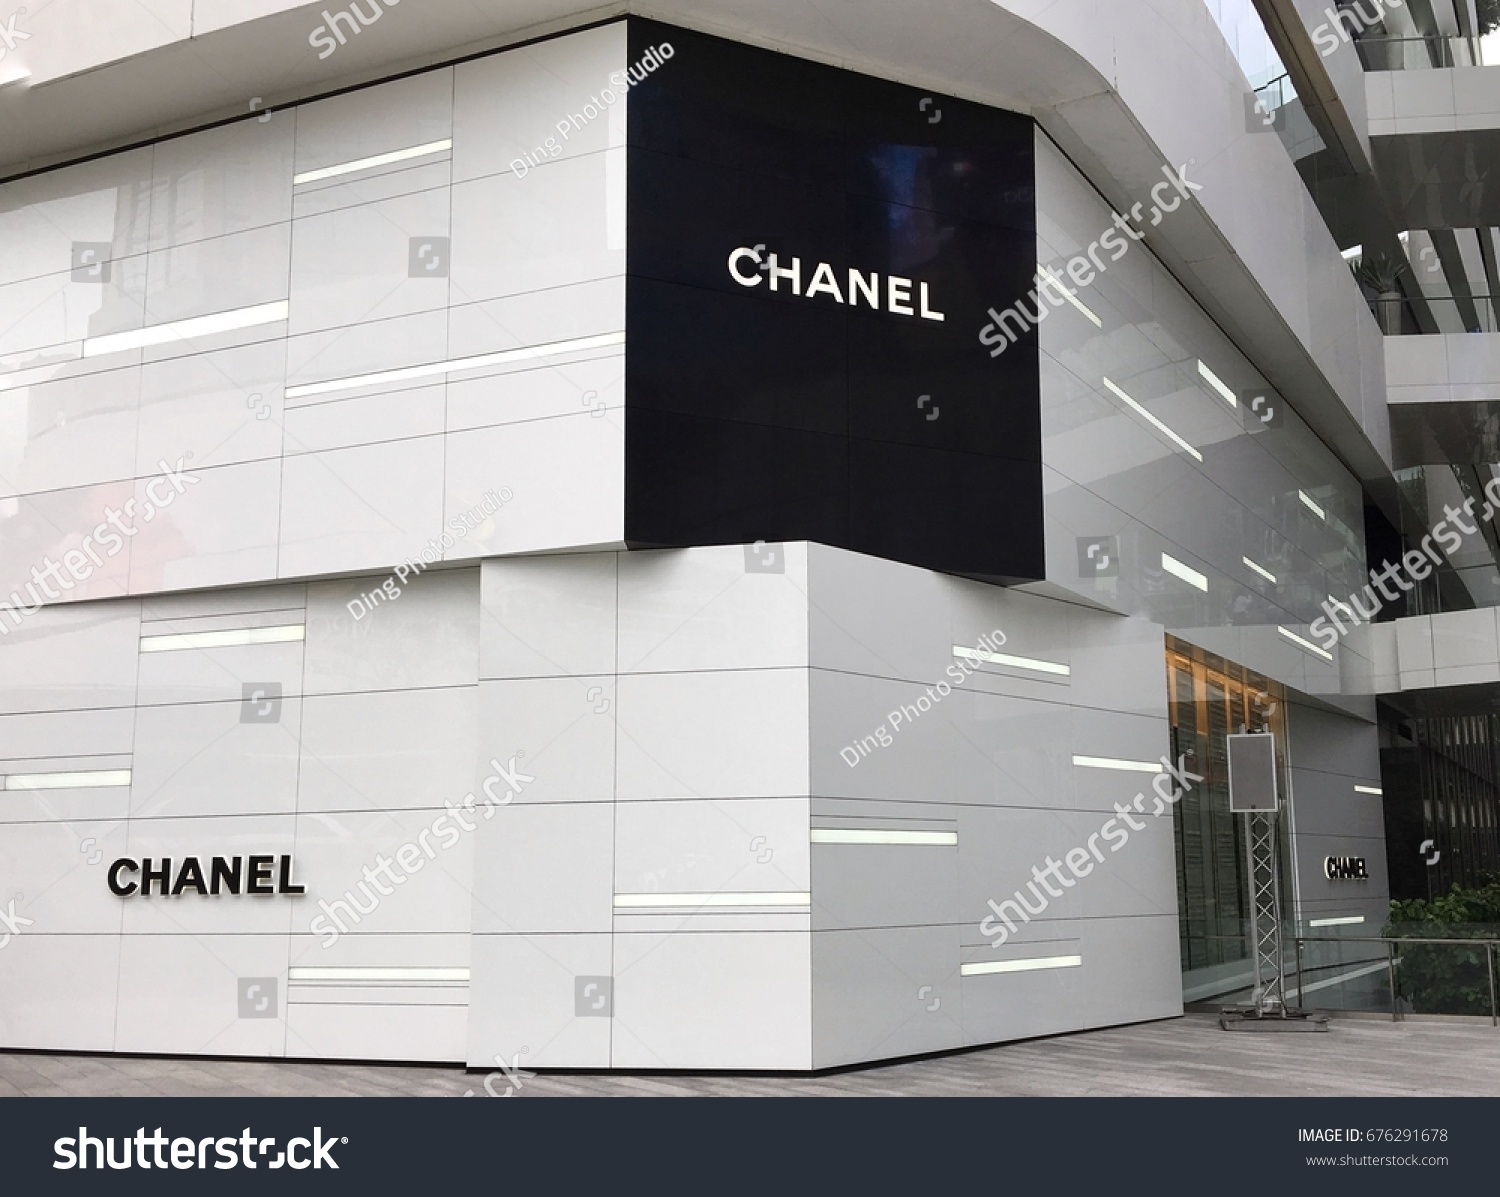 105fcecd2a98 CHANEL logo in front of chanel boutique store outside at the Emquartier  department store in Bangkok